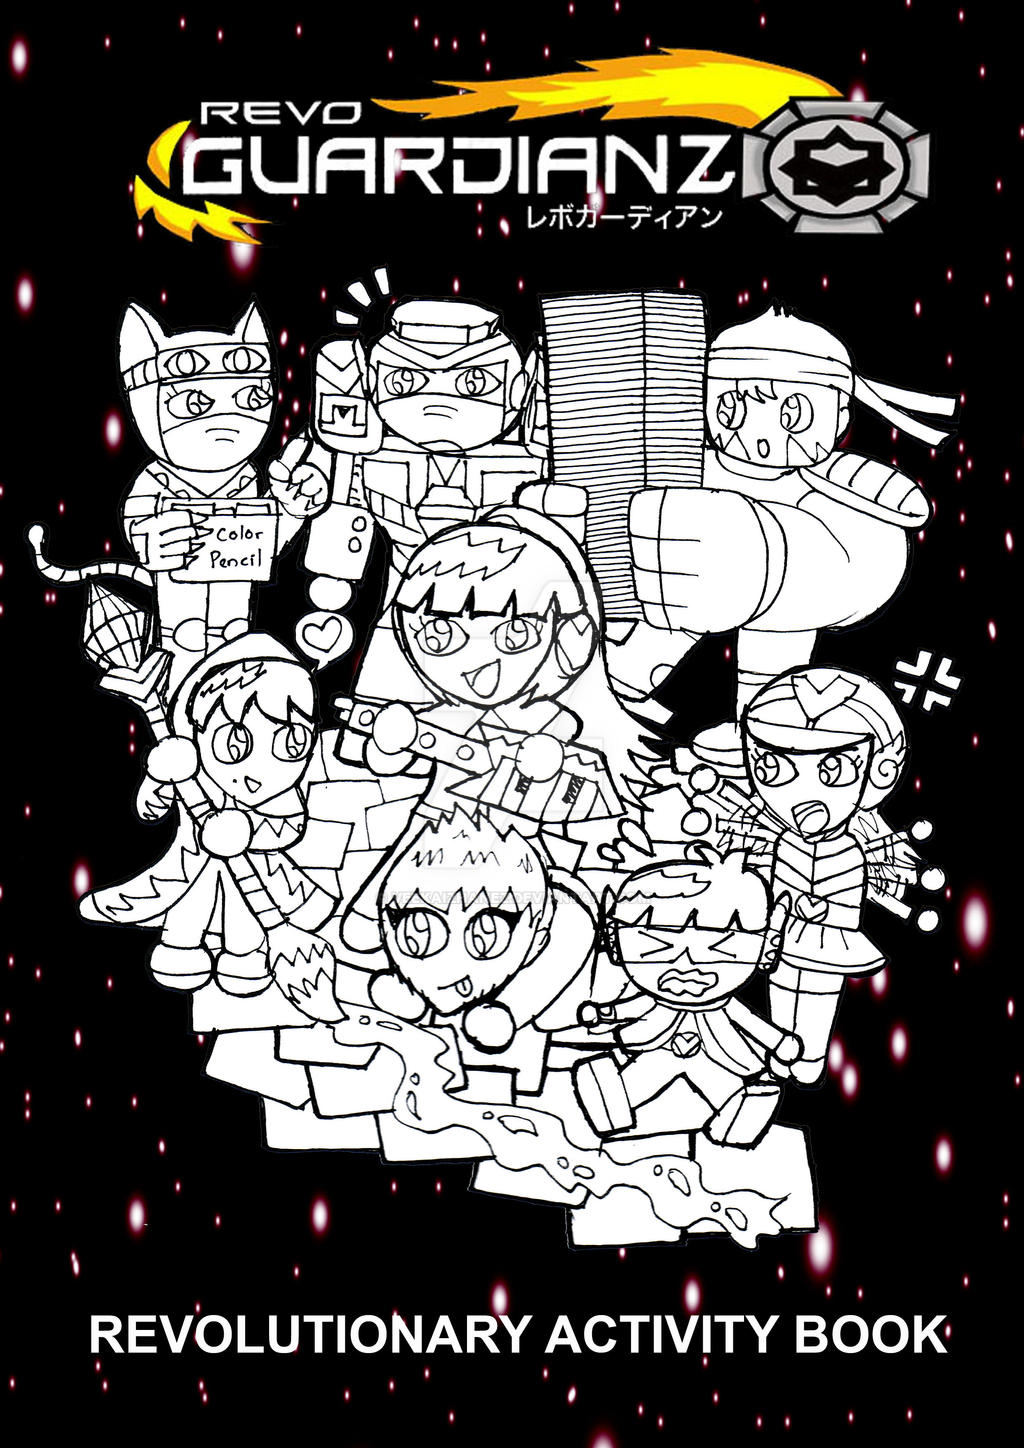 Book Cover Art Activity ~ Revo guardianz activity book cover by veekaizhanez on